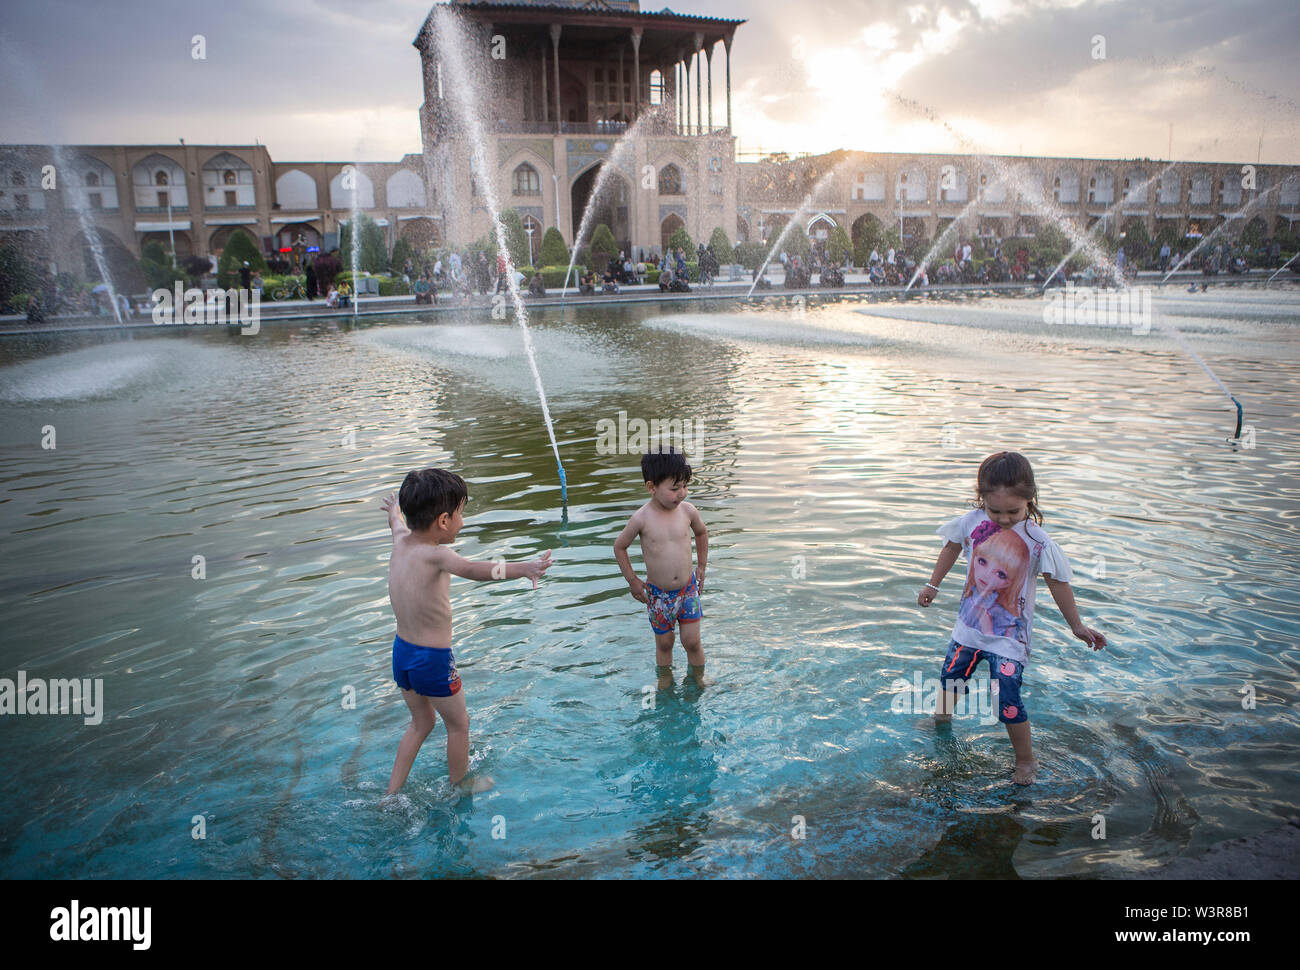 Isfahan, Iran. 16th July, 2019. Children cool themselves off in the water on a hot day in Isfahan, Iran, July 16, 2019. Credit: Ahmad Halabisaz/Xinhua/Alamy Live News - Stock Image